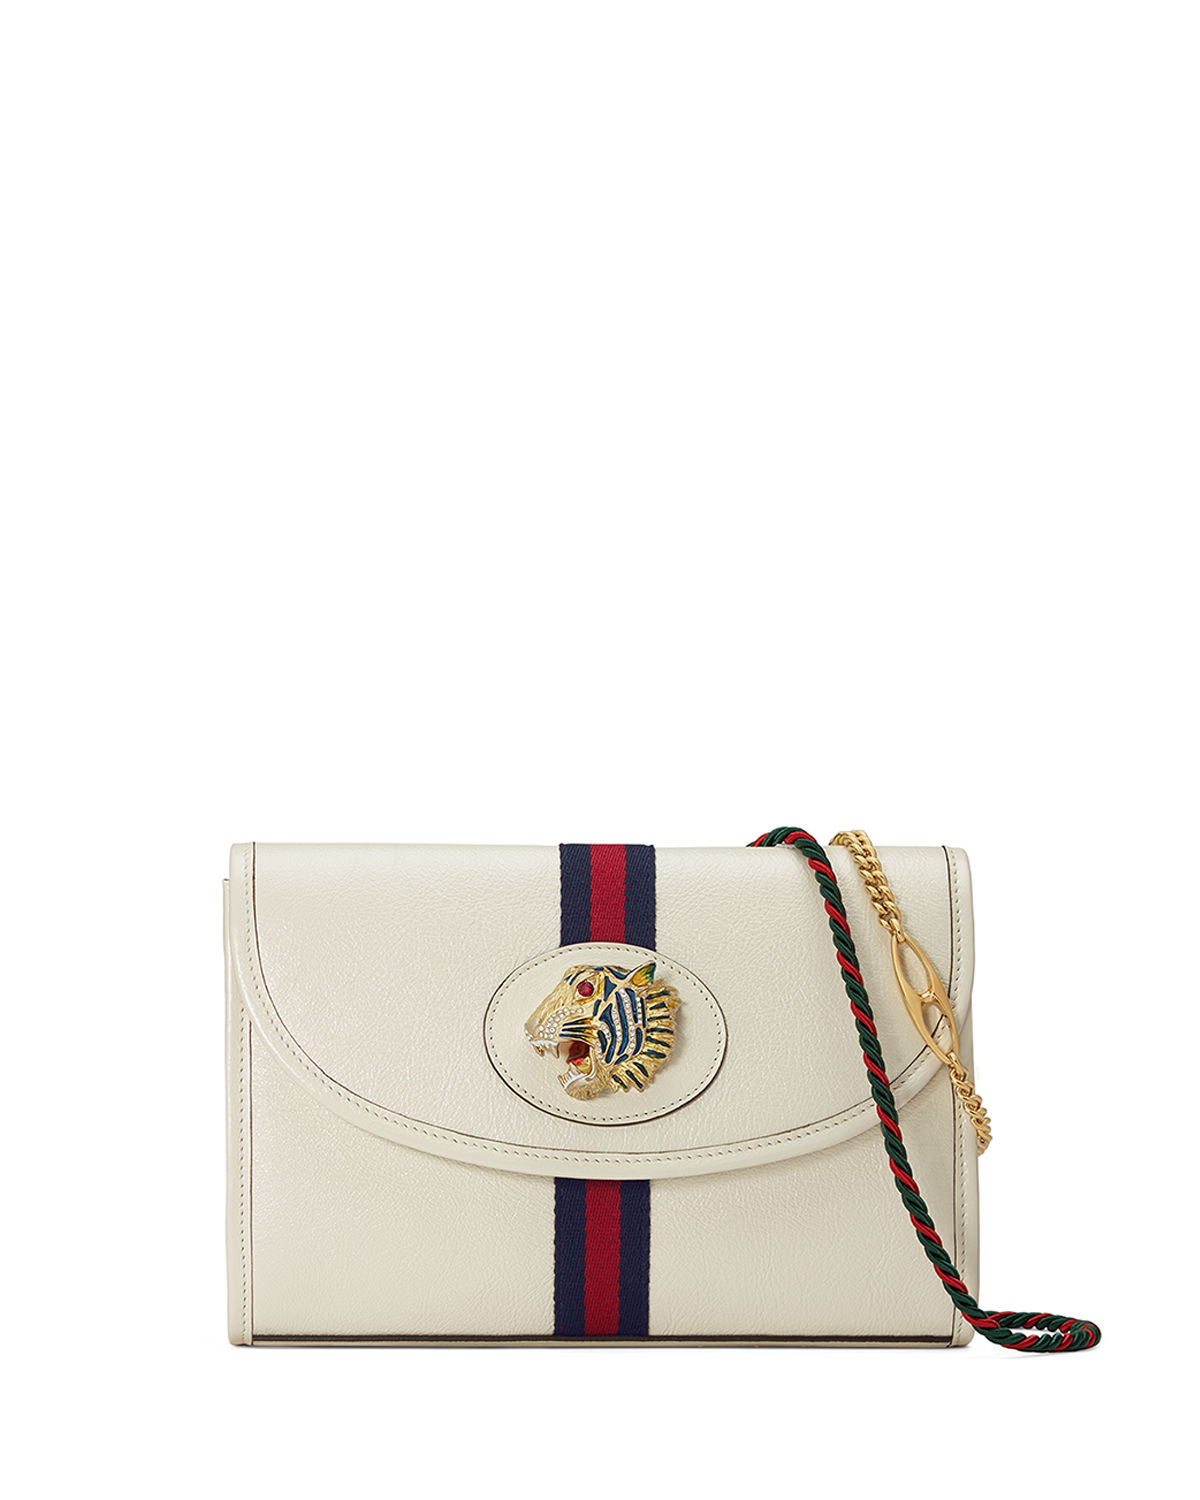 8289cfb05 Gucci Rajah Small Shoulder Bag | Neiman Marcus